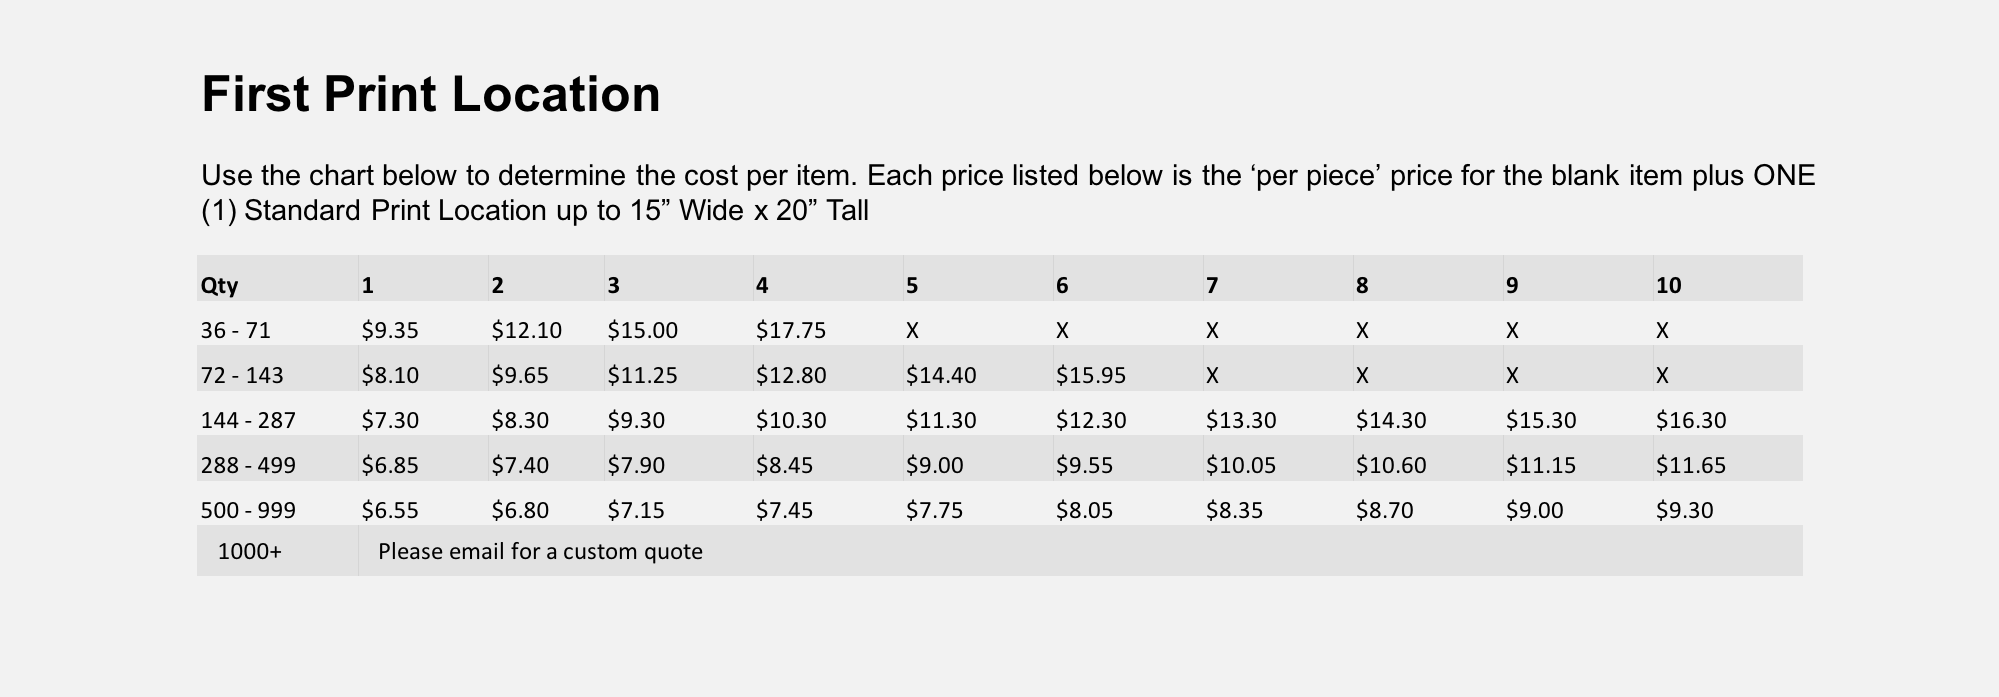 G420L_Pricing.png